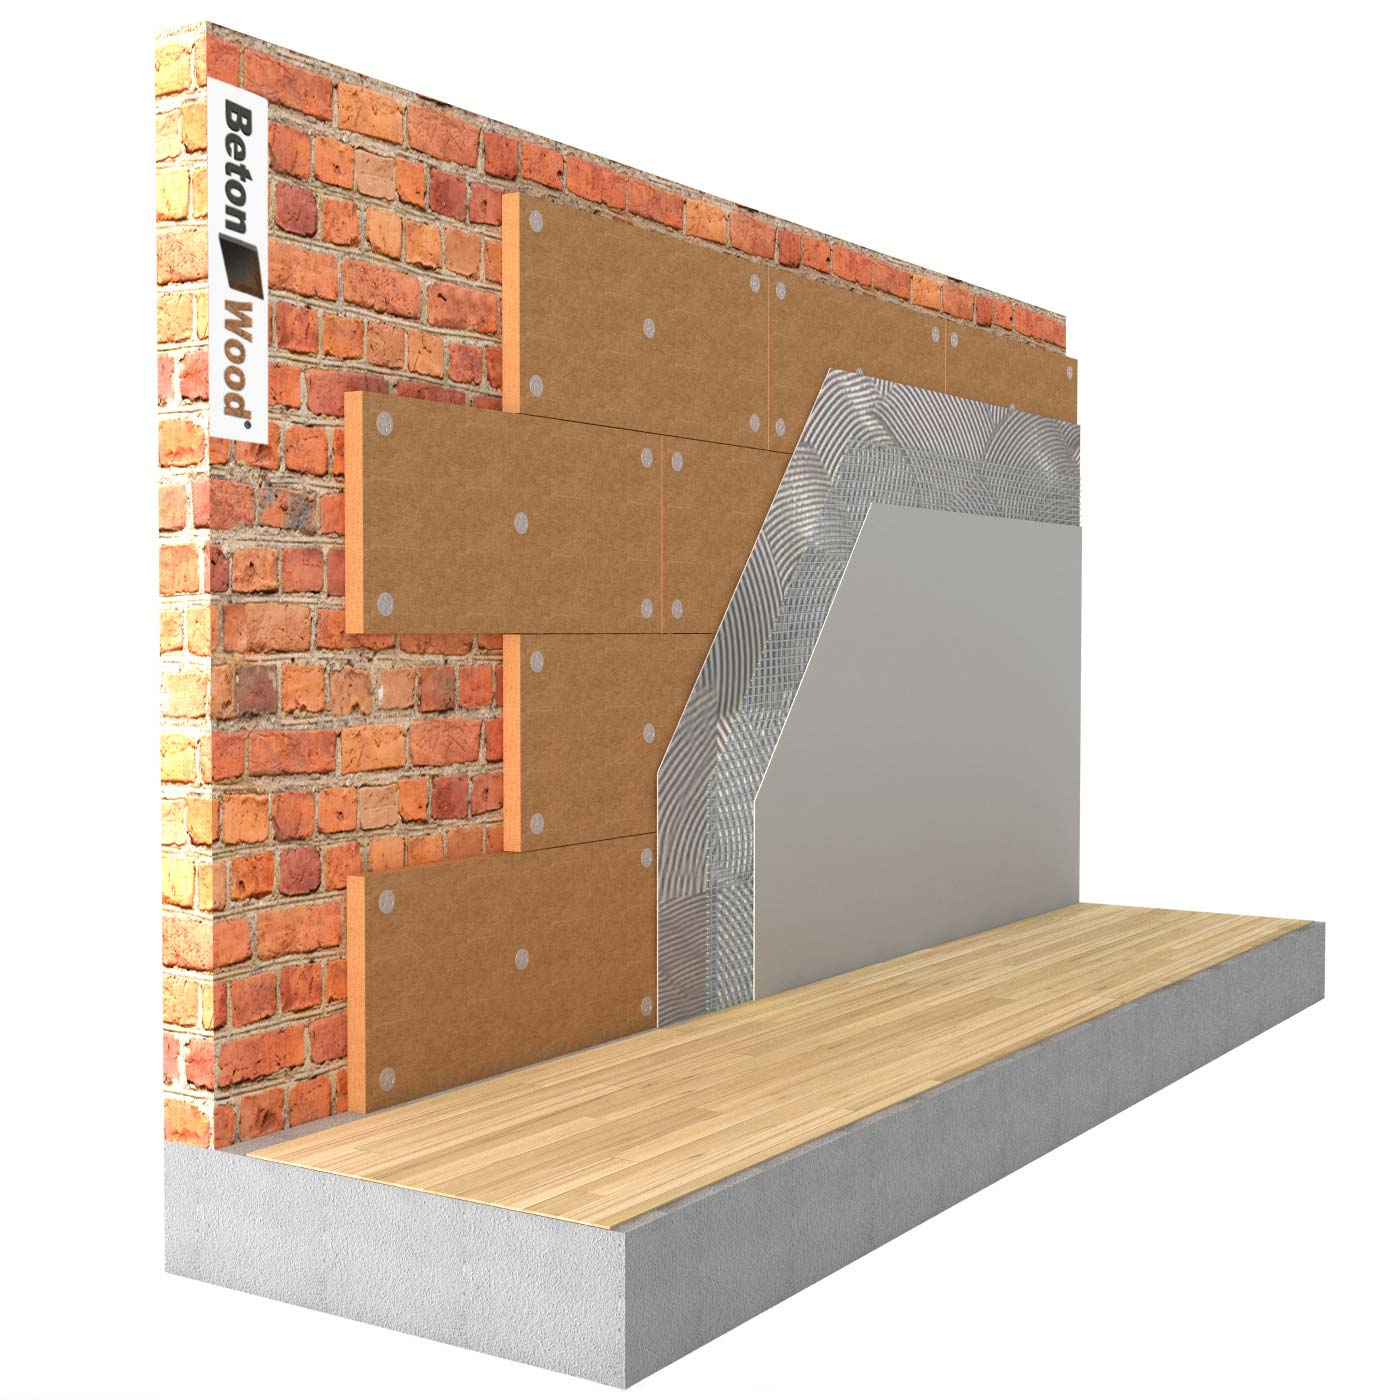 Internal insulation systems with Wood fibre board